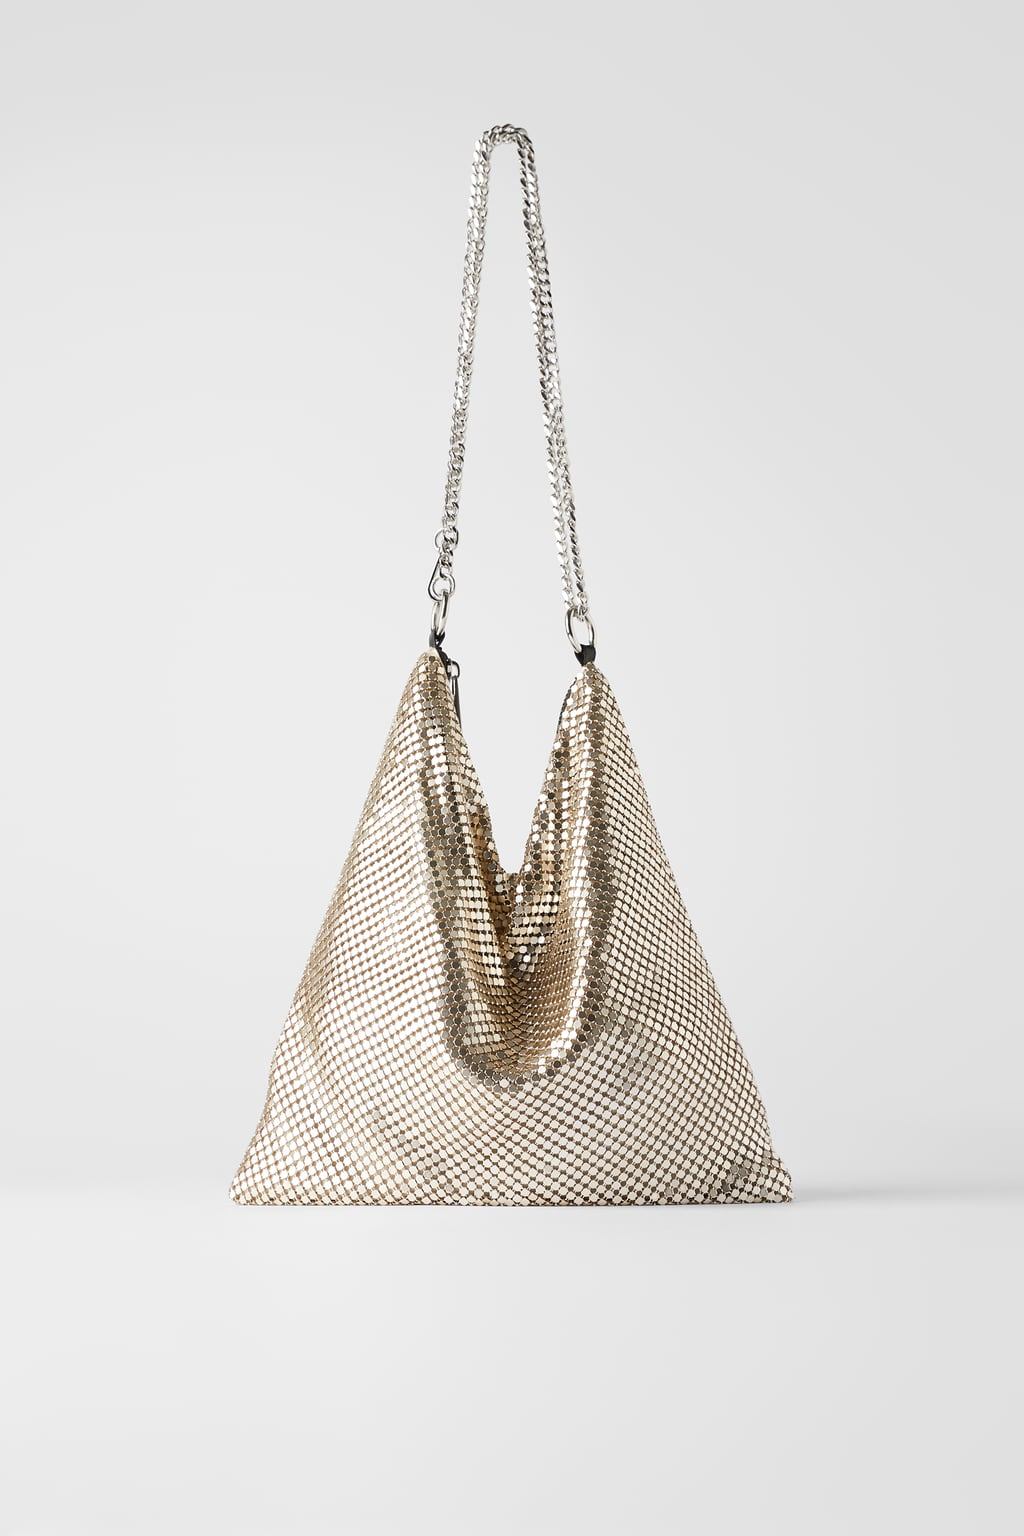 Zara Metallic Mesh Cross body bag £29.99